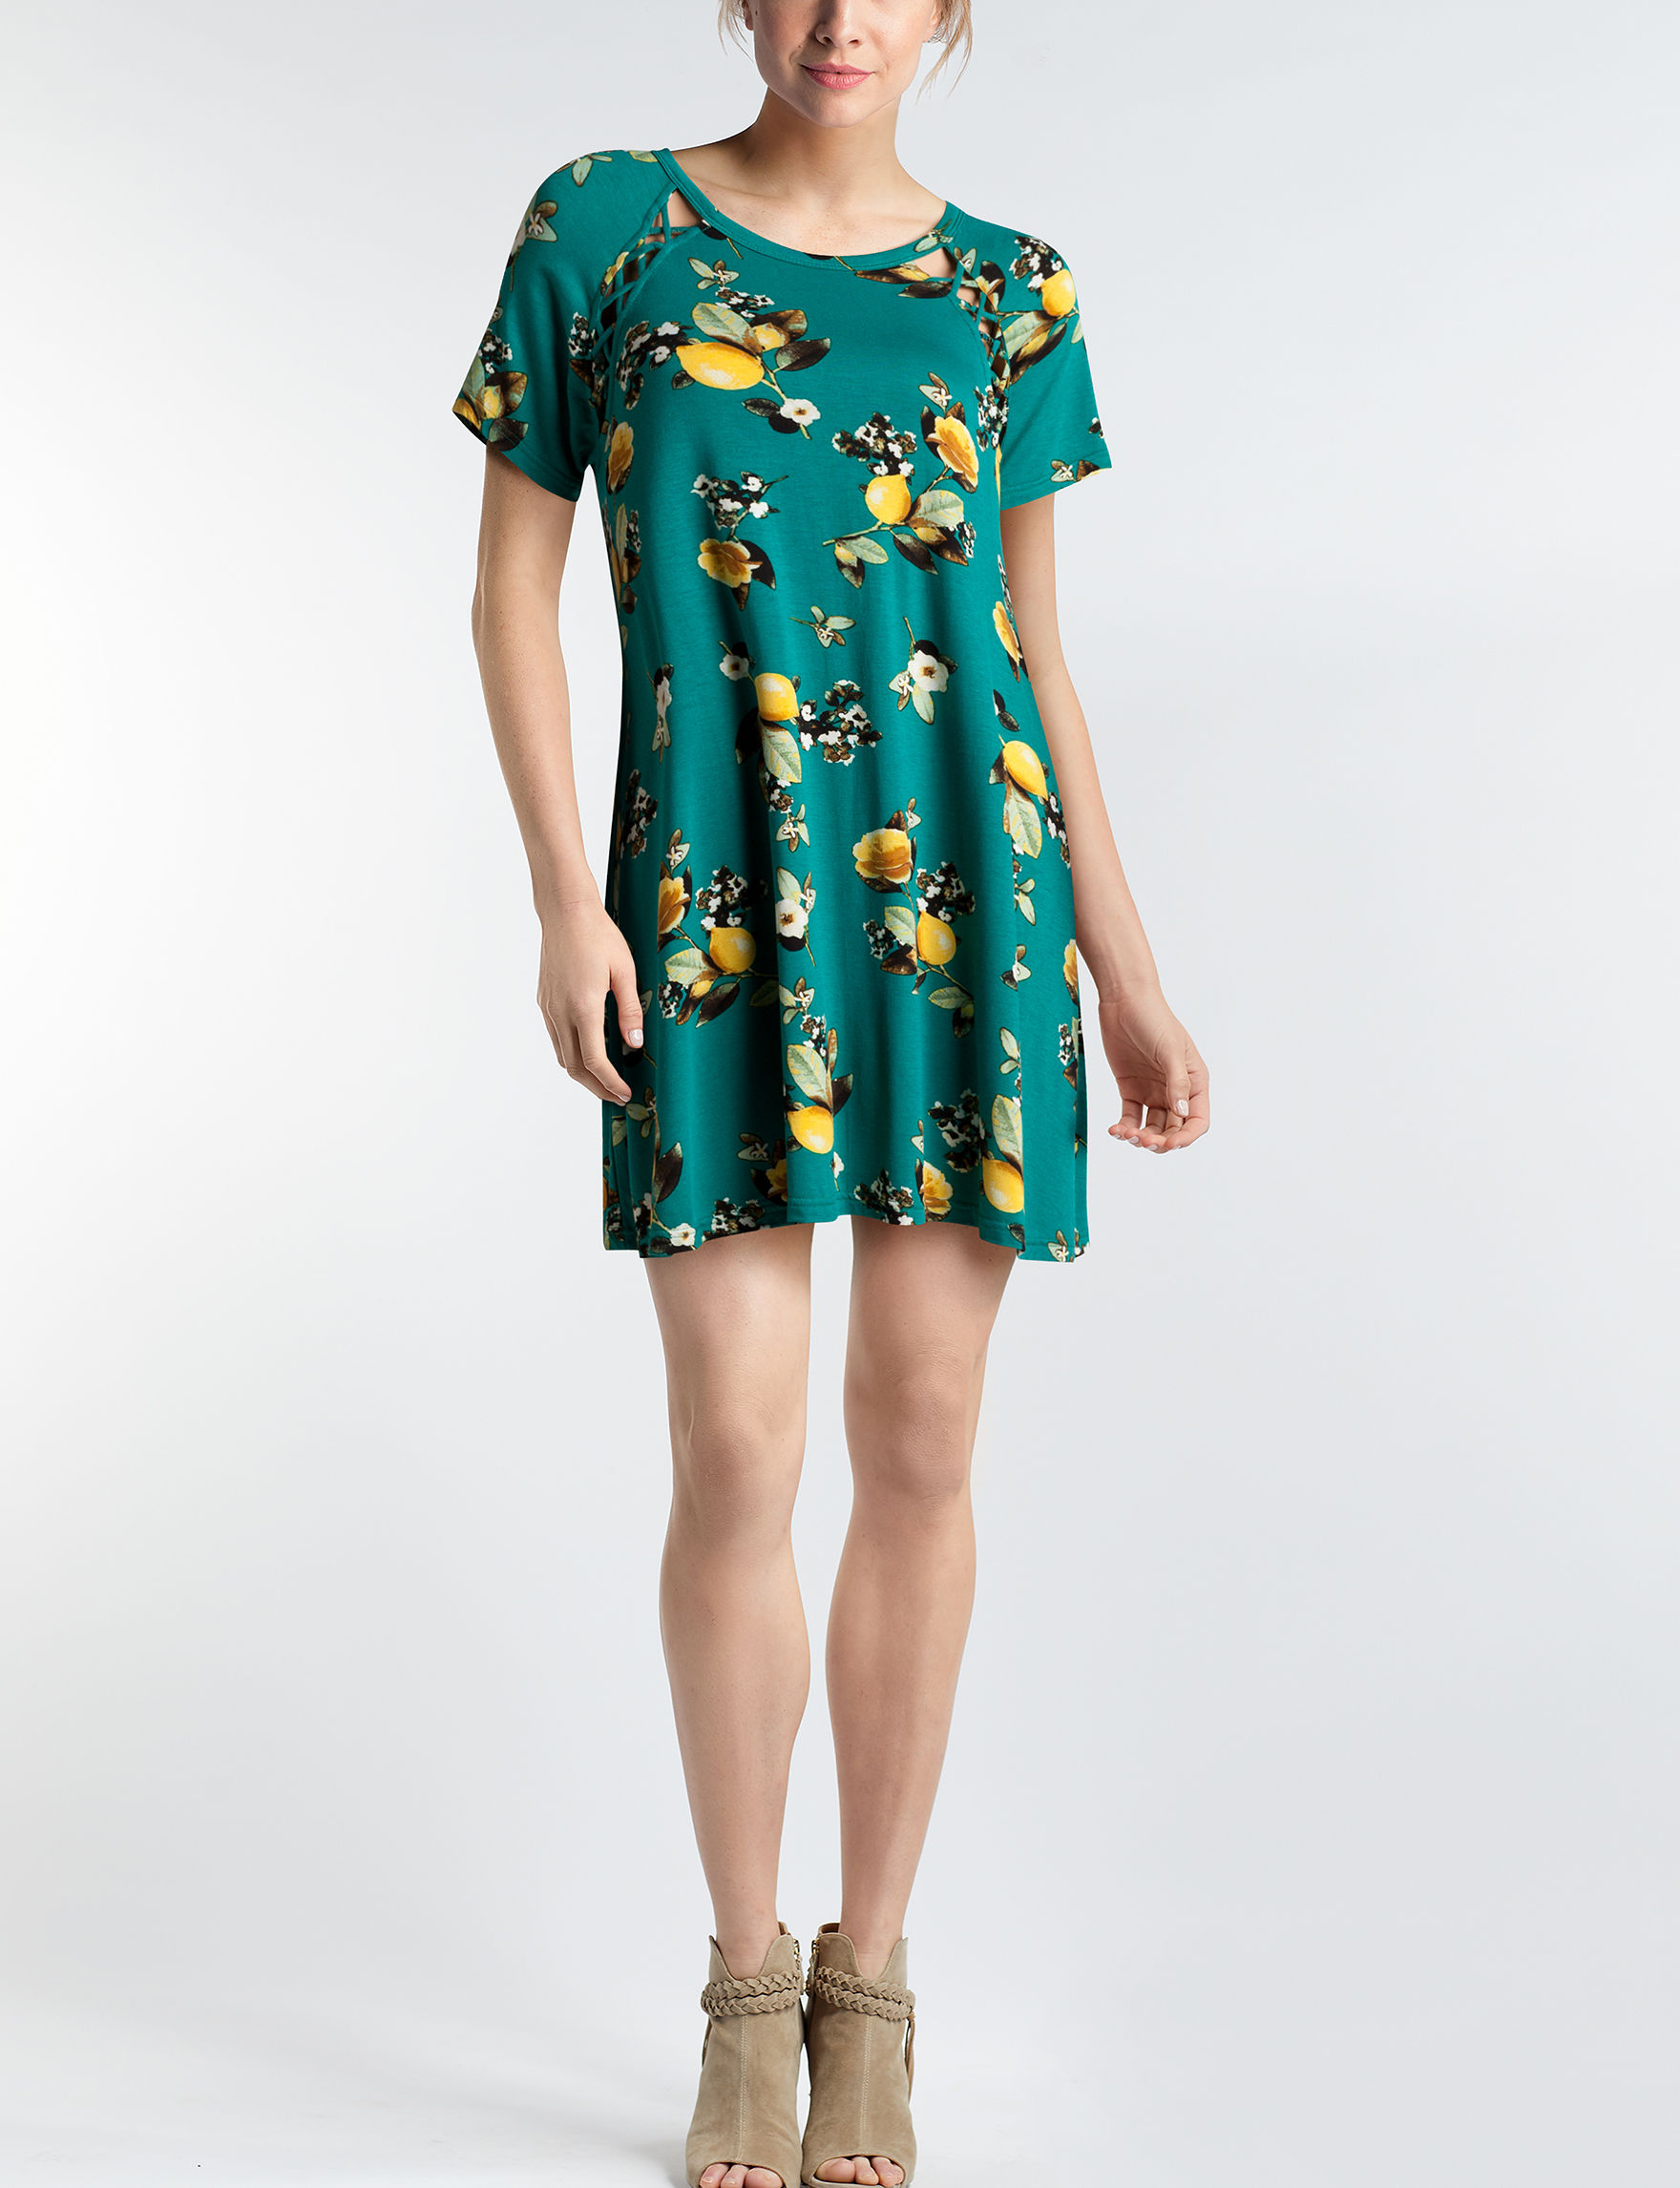 Wishful Park Teal Floral Everyday & Casual Sheath Dresses Shift Dresses